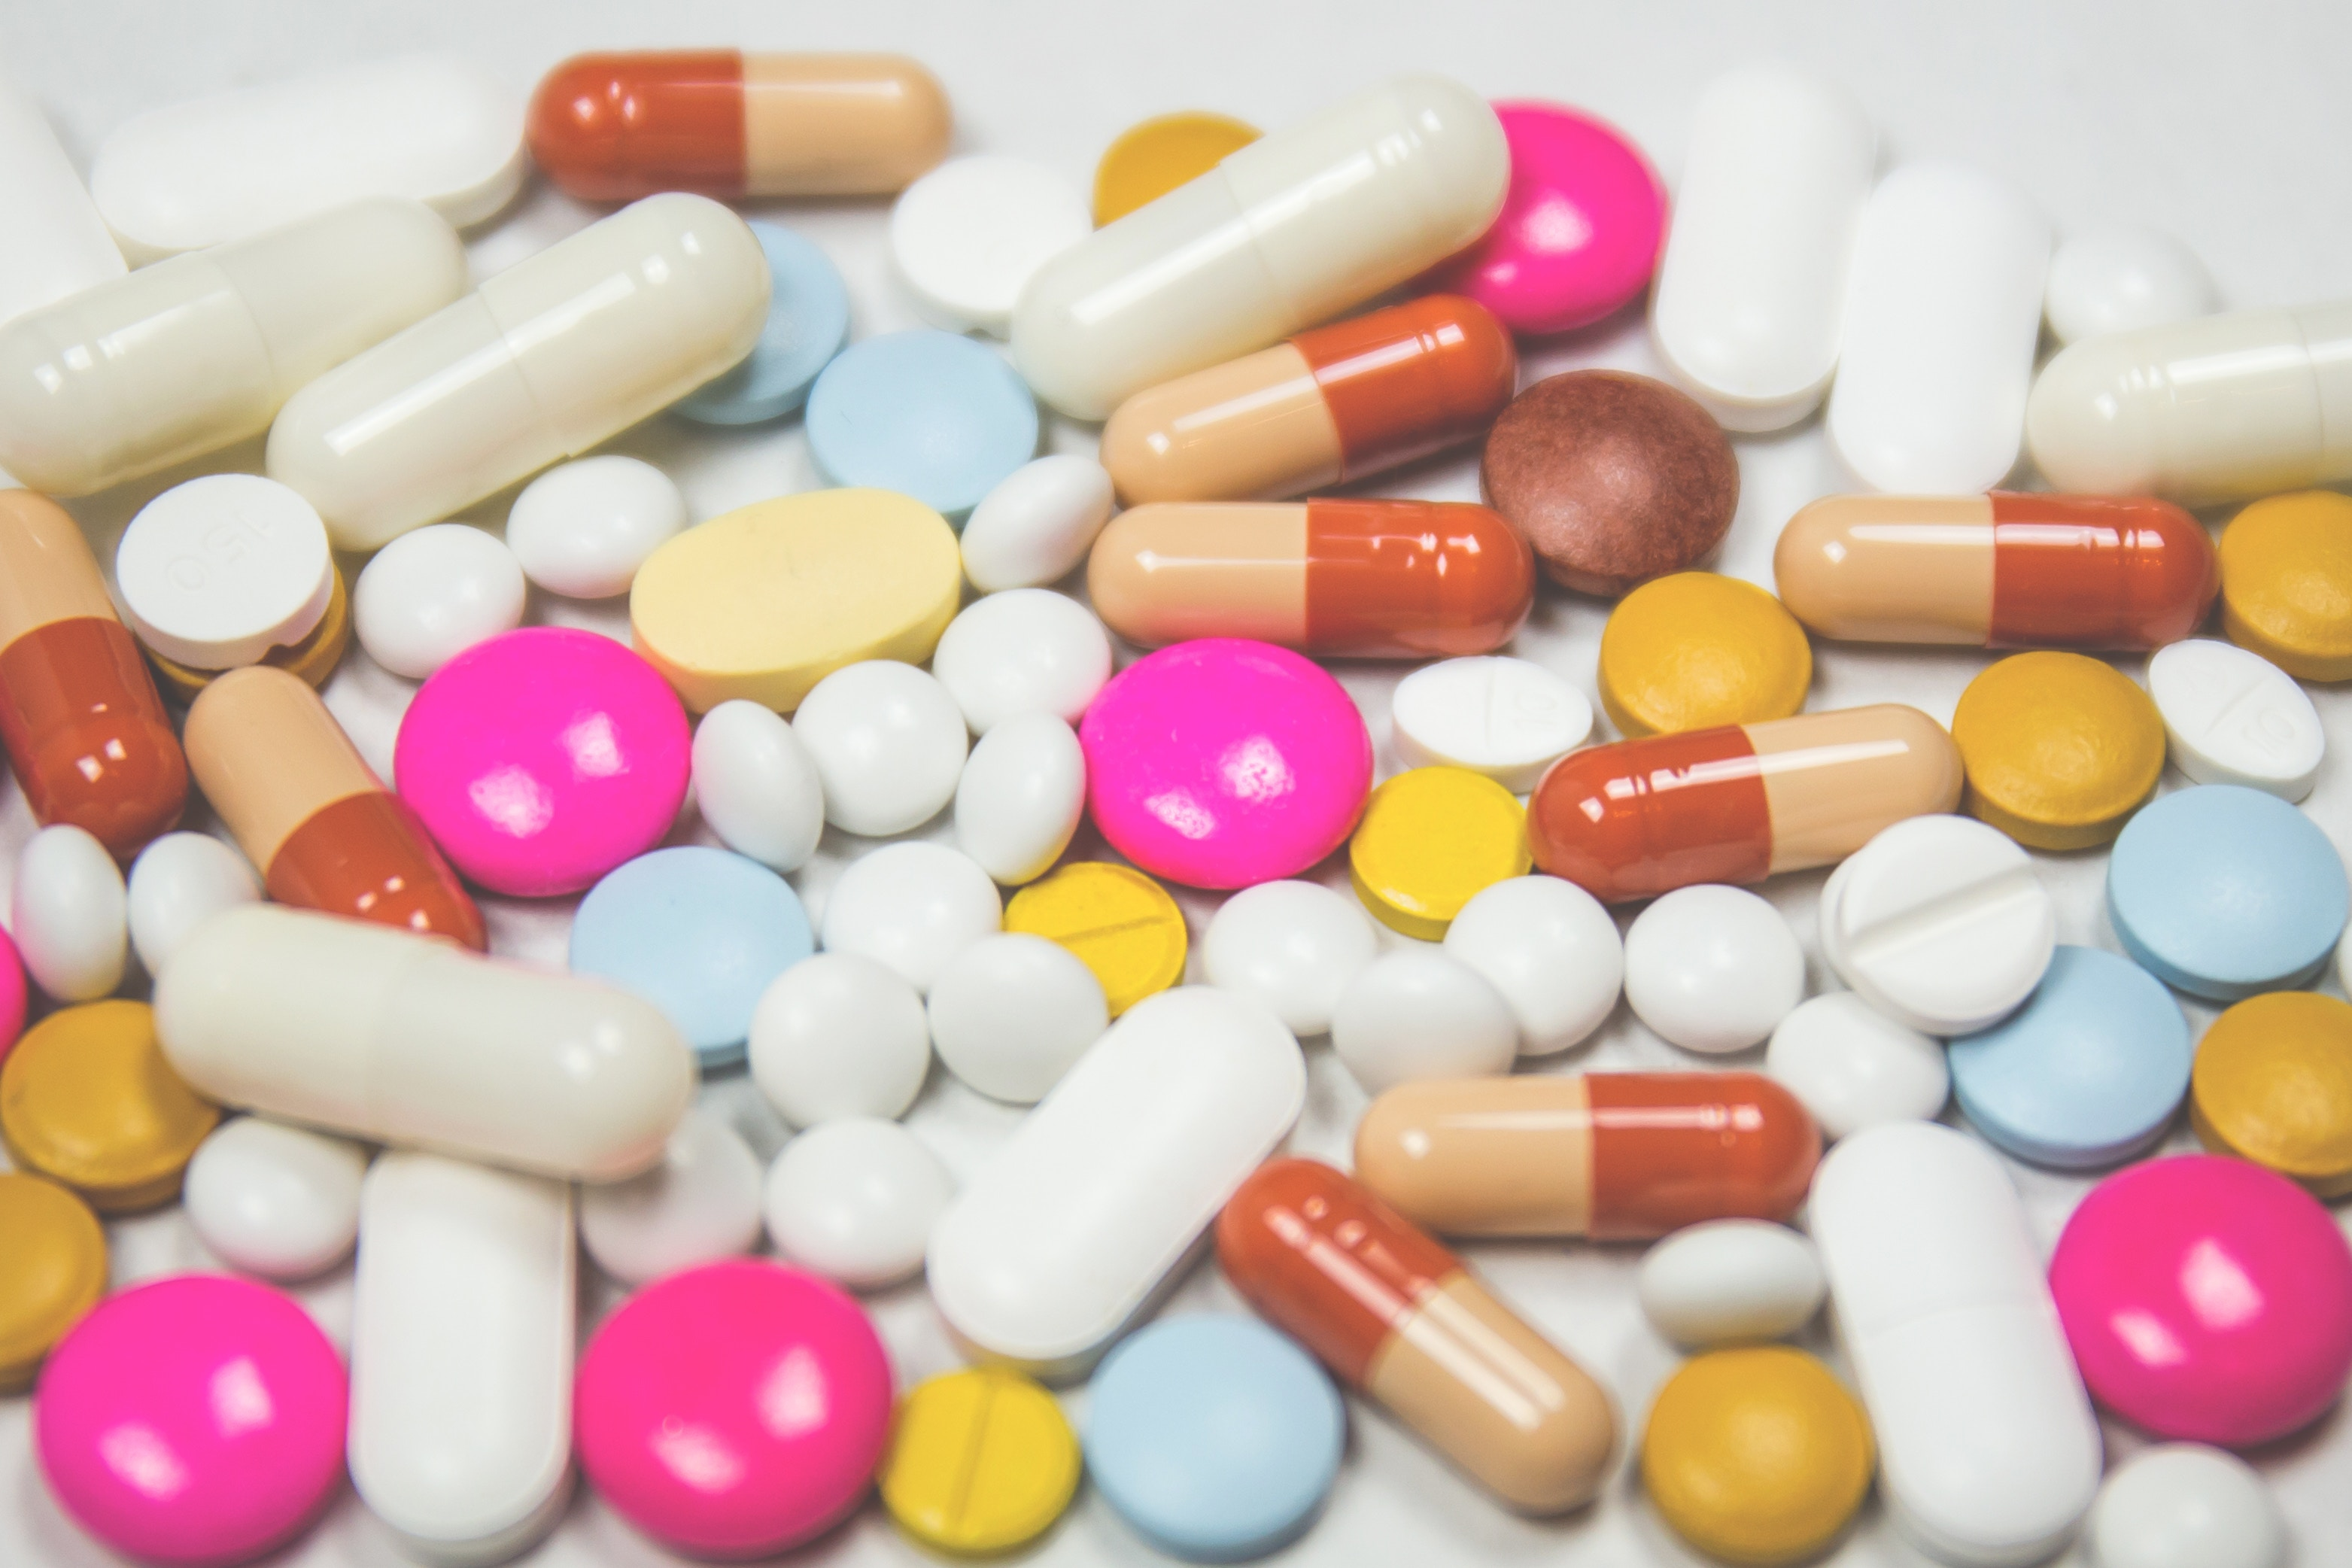 5 Ways Pharmaceutical Manufacturers Fight Counterfeits